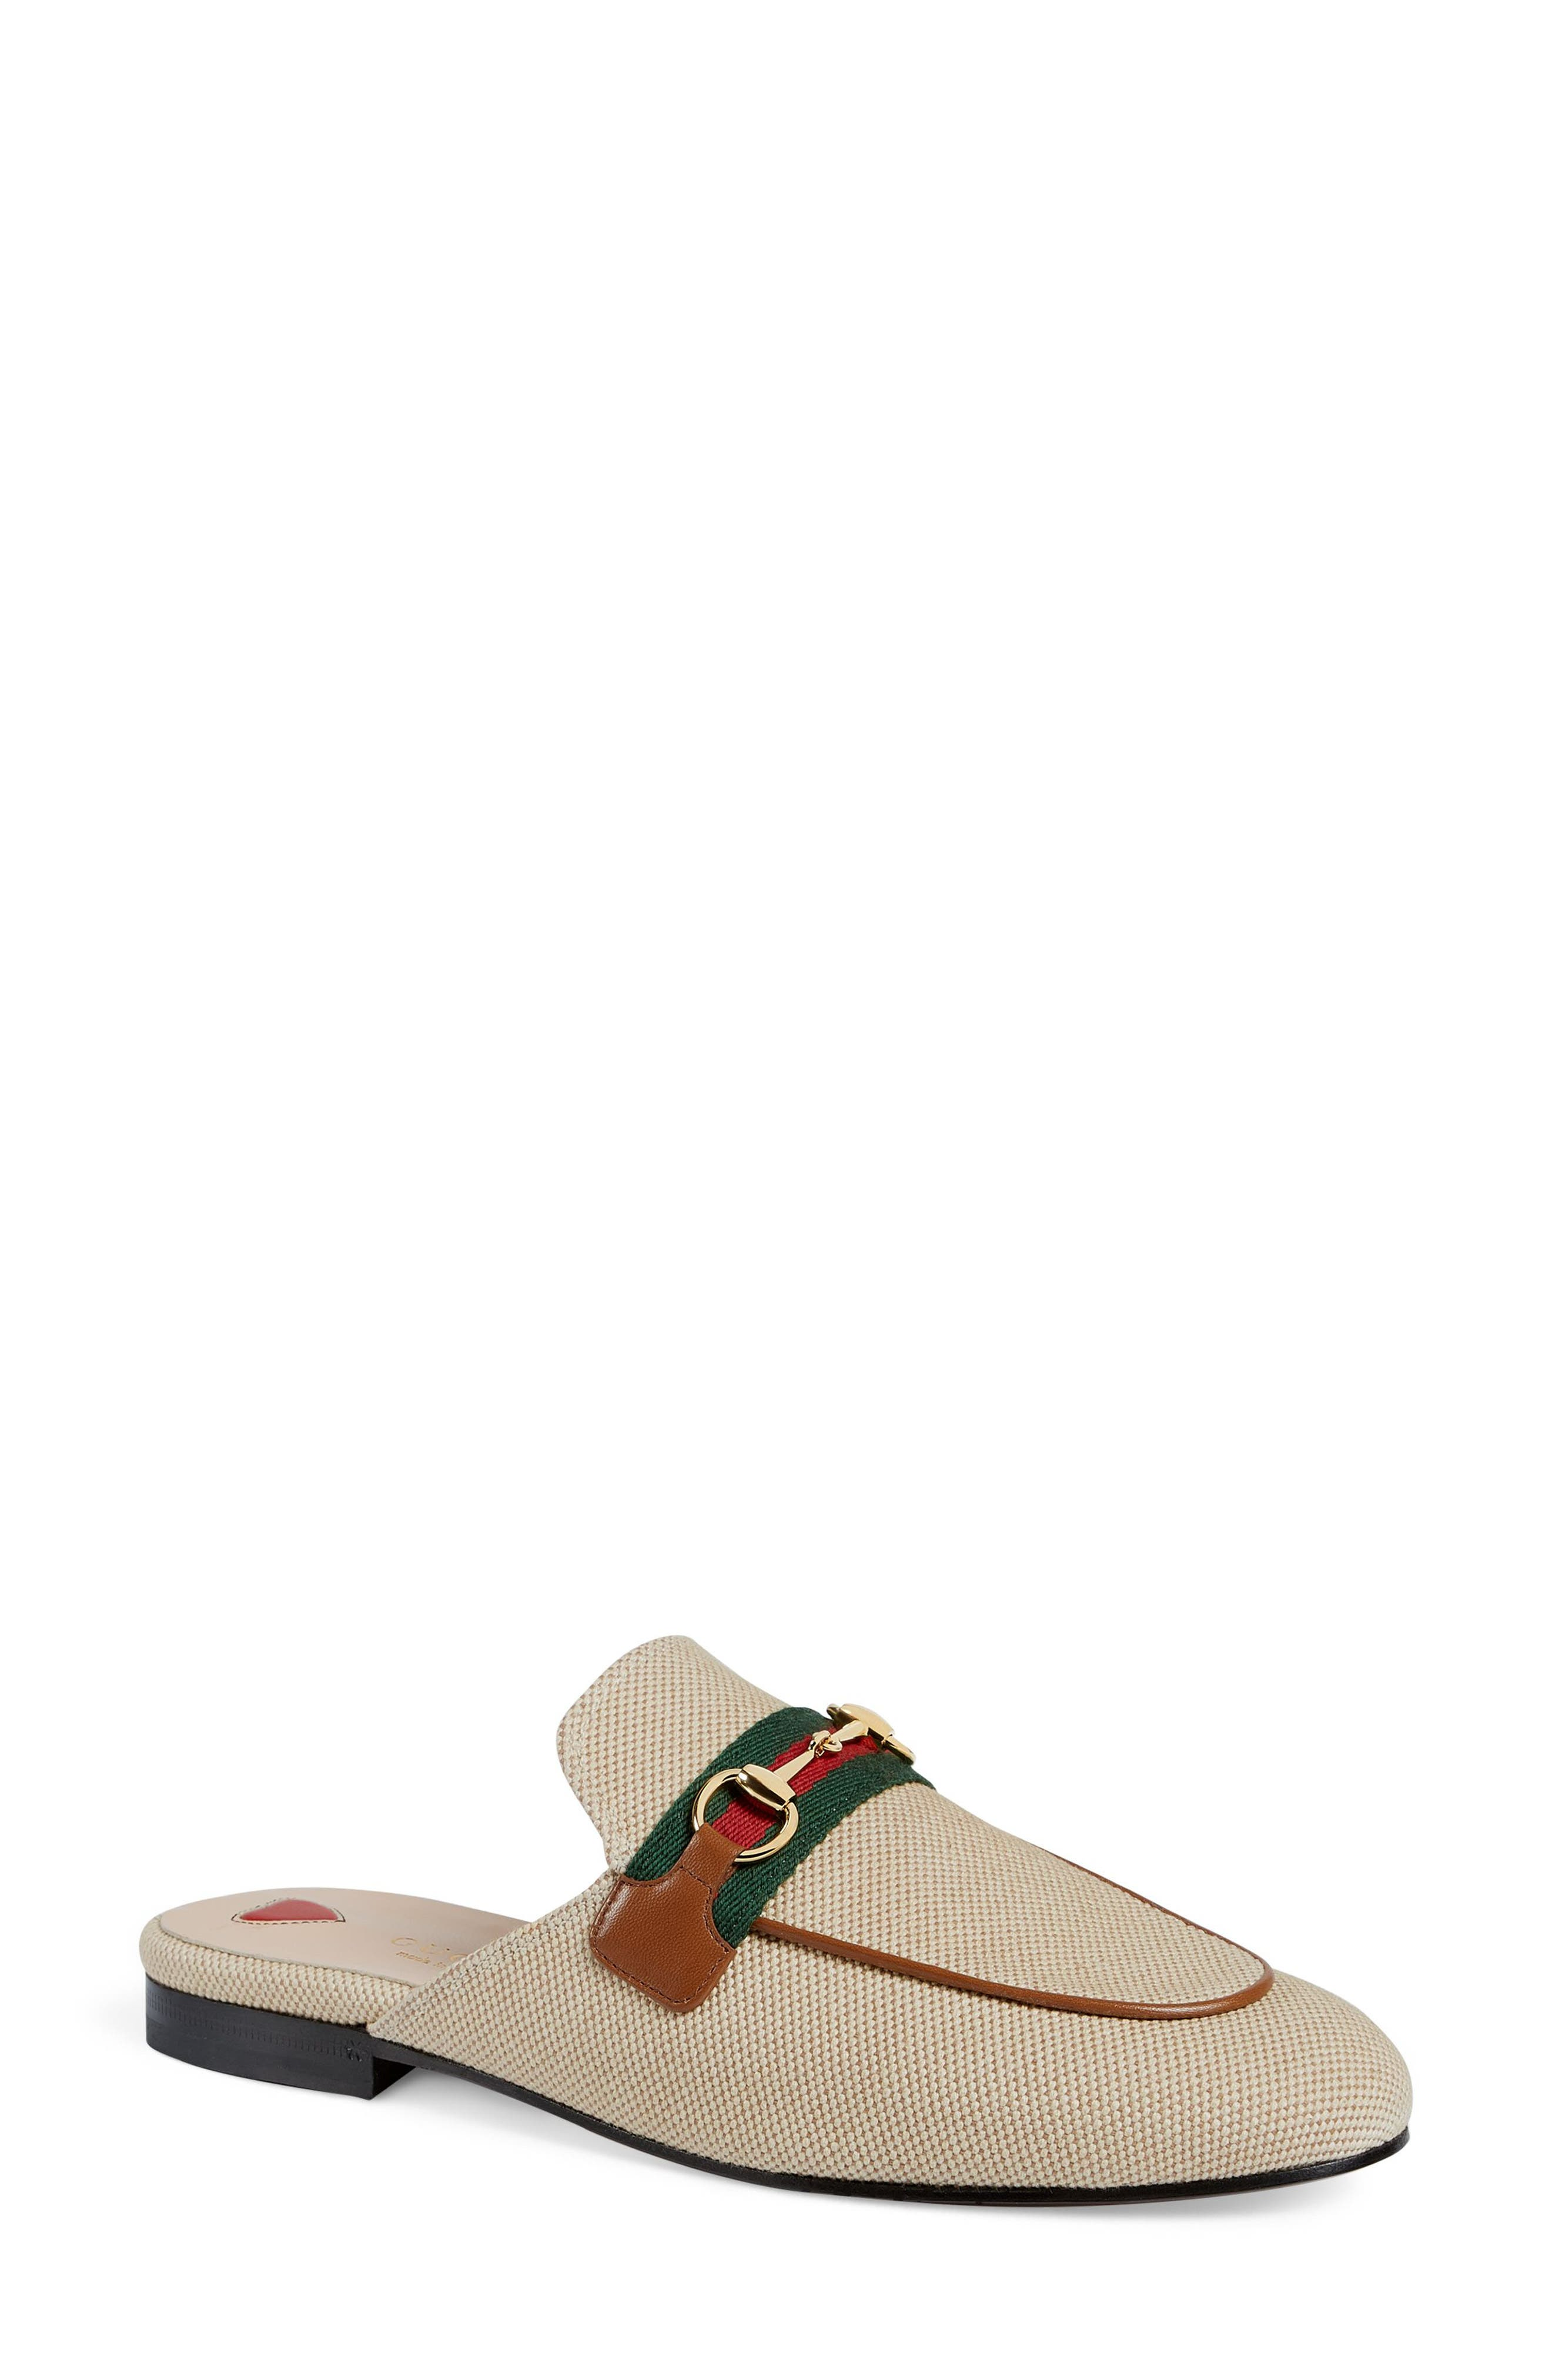 Gucci Princetown Mule - Ivory